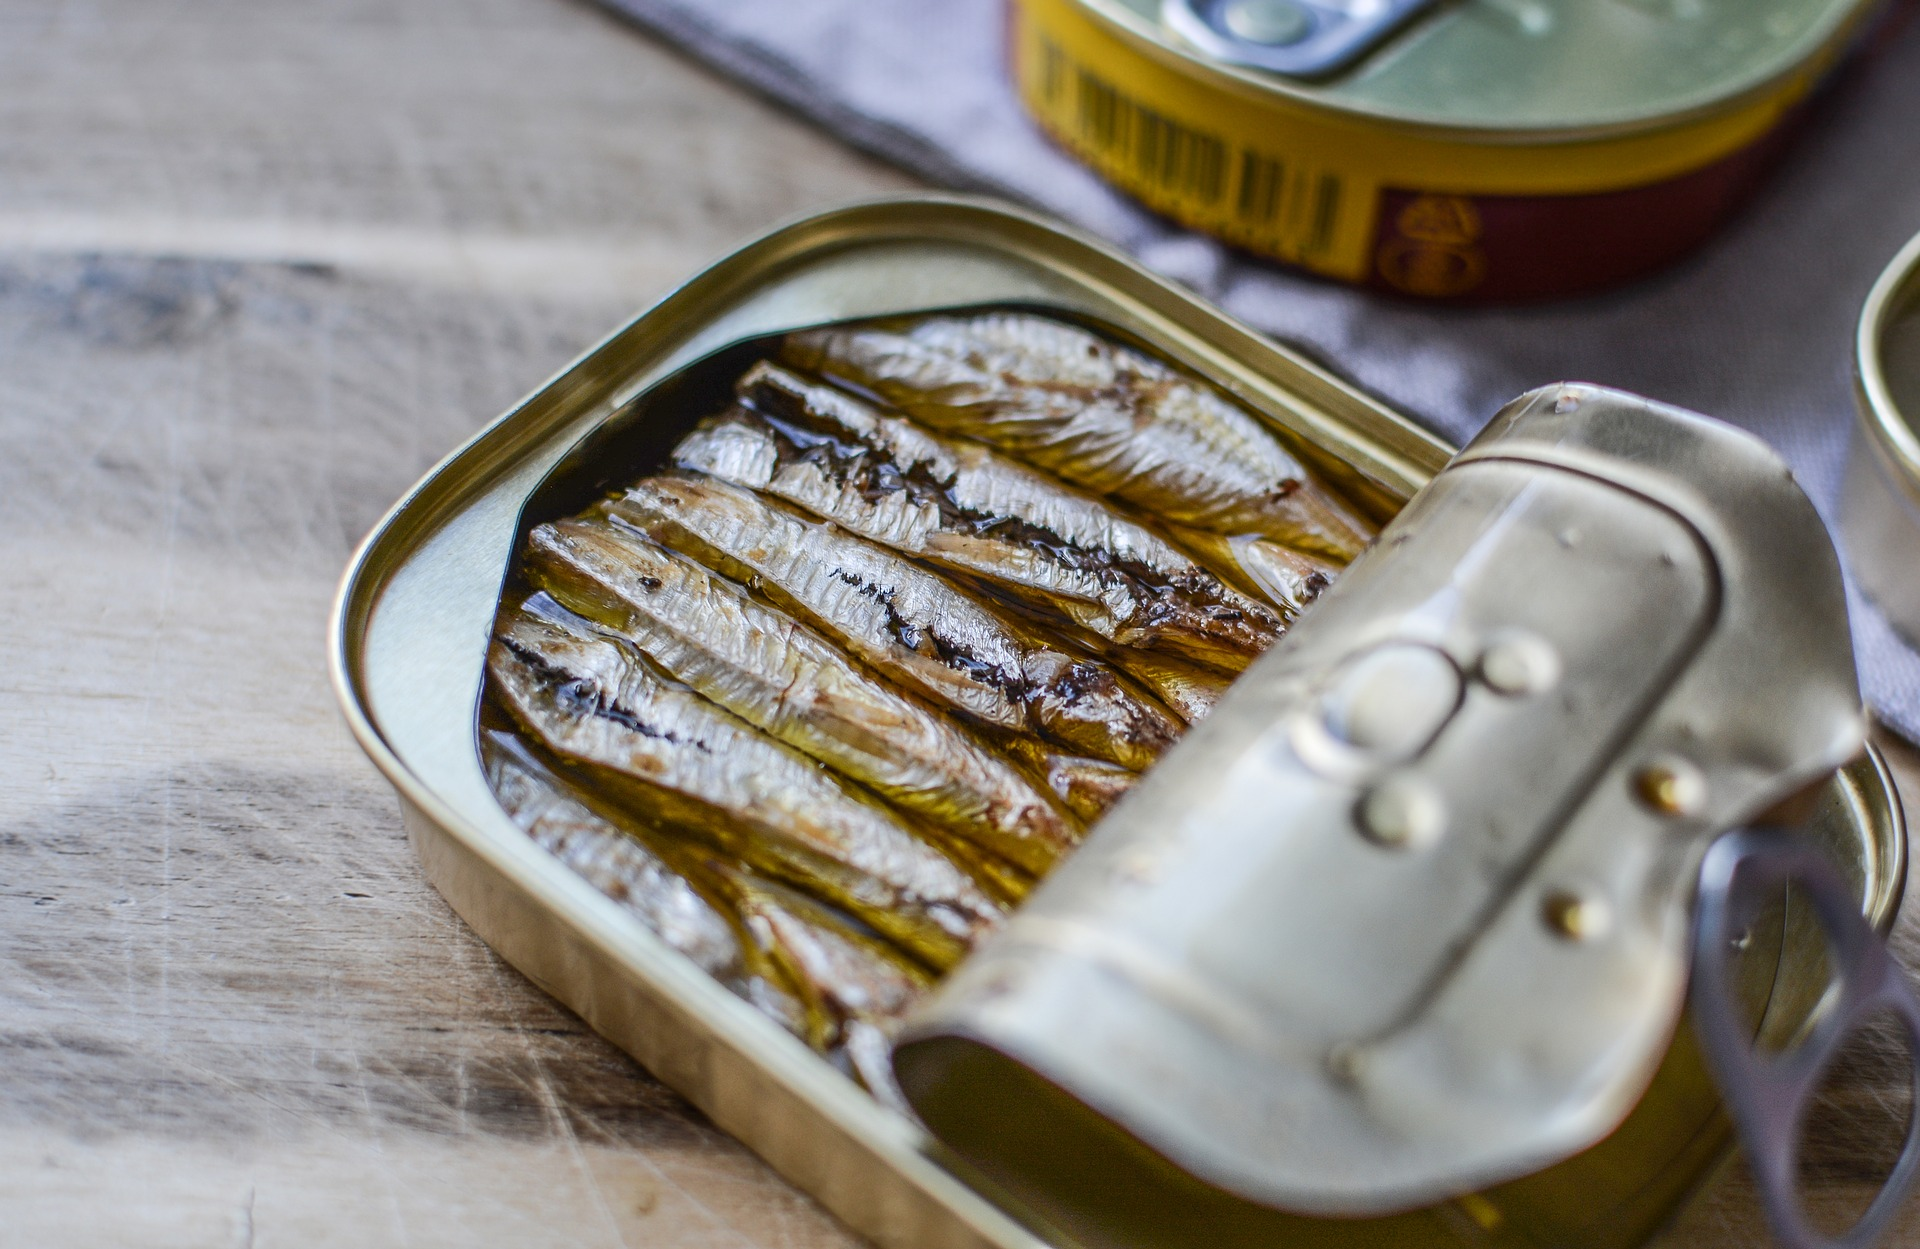 A can with sardines, a small fish